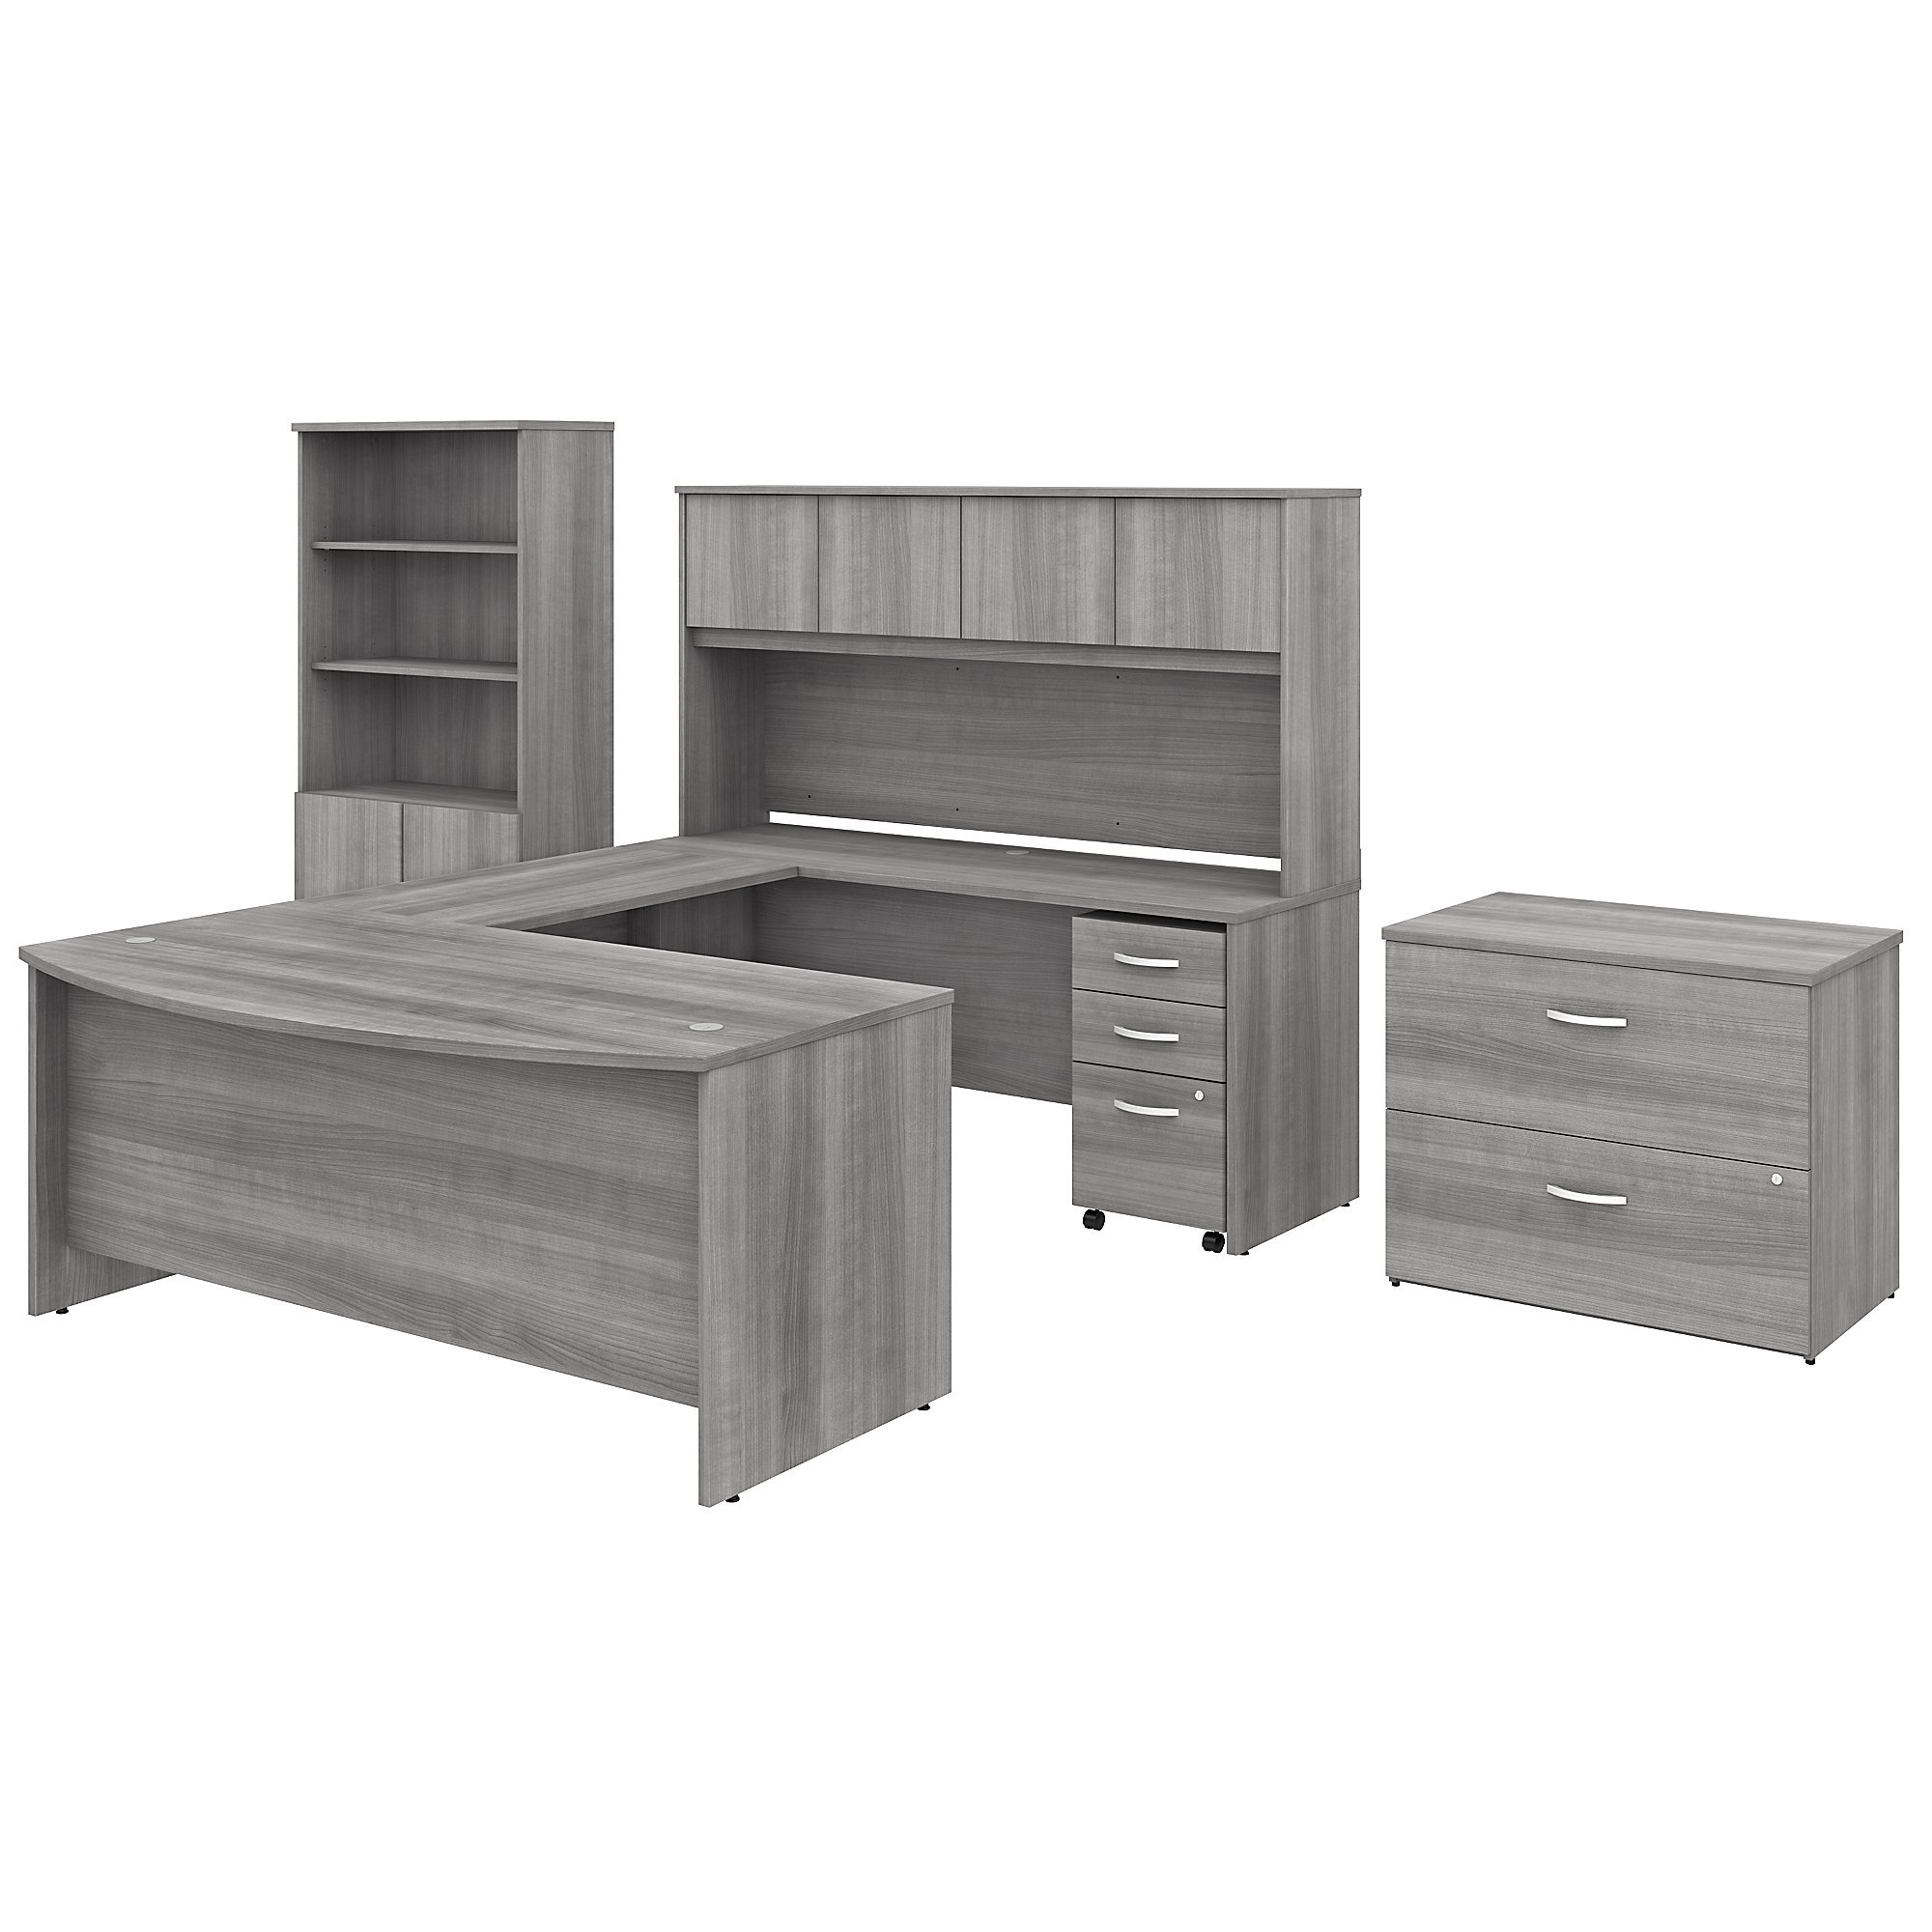 Bush Studio C Collection Contemporary U Shaped Desk with Hutch, Bookcase and File Cabinets STC001